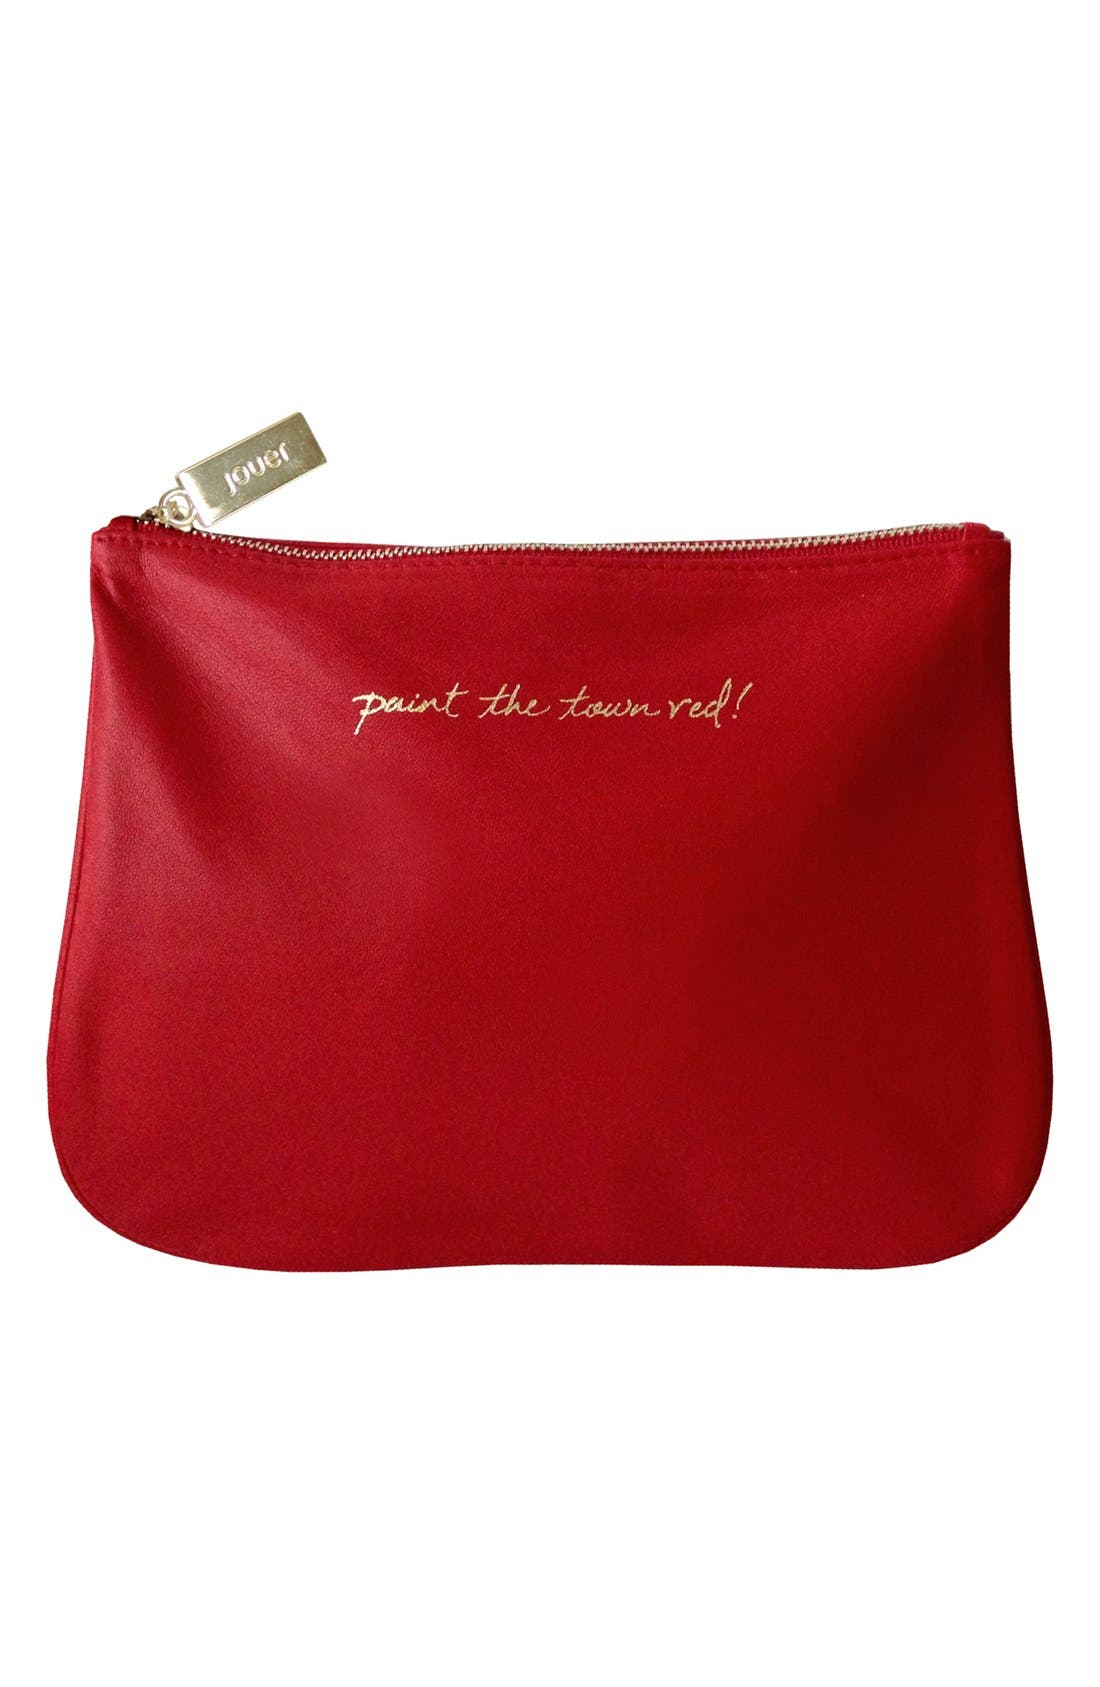 'IT - Paint the Town Red' Cosmetics Bag,                         Main,                         color,